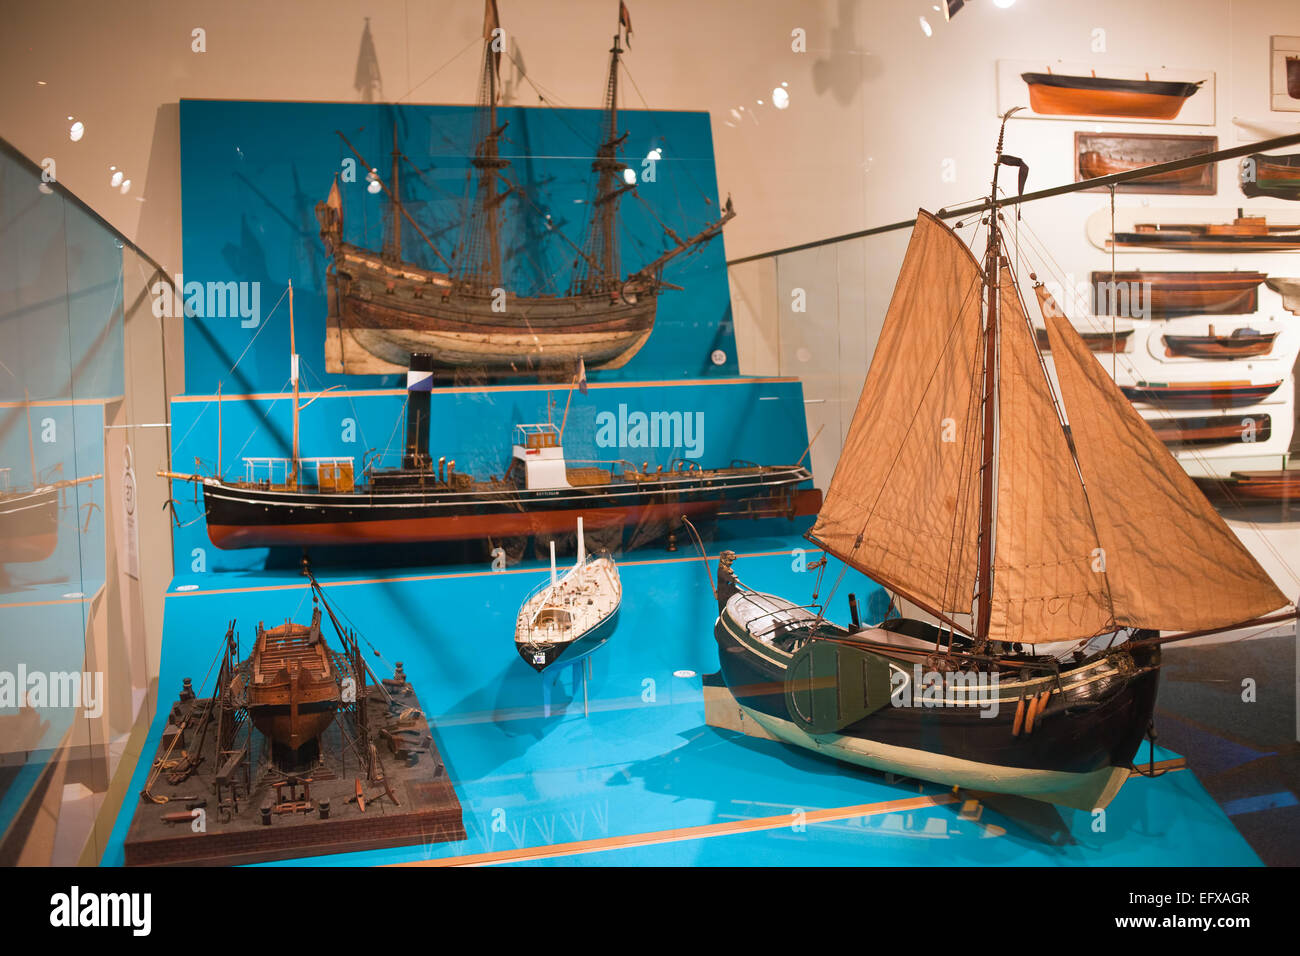 Ship models in Rotterdam Maritime Museum, Holland, Netherlands. - Stock Image